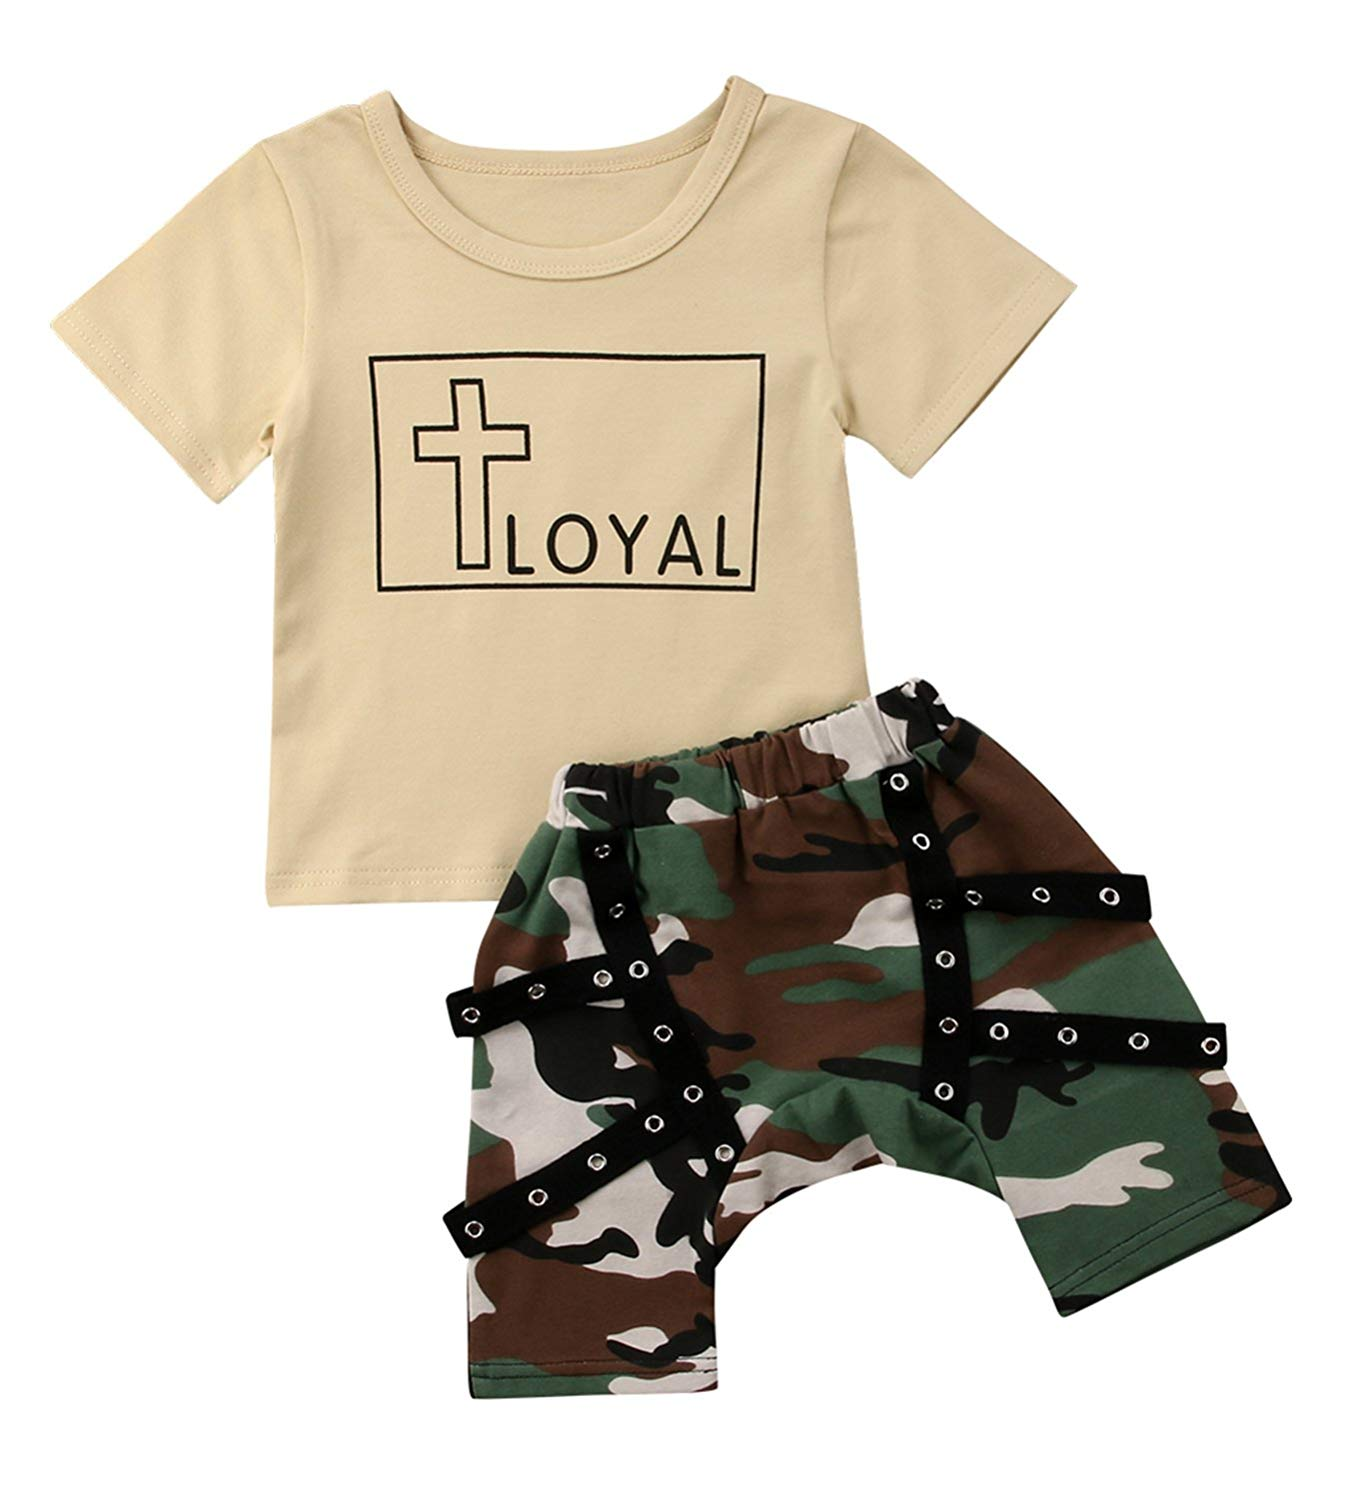 ceb3a6e5993 Get Quotations · yannzi Toddler Boy Summer Clothes